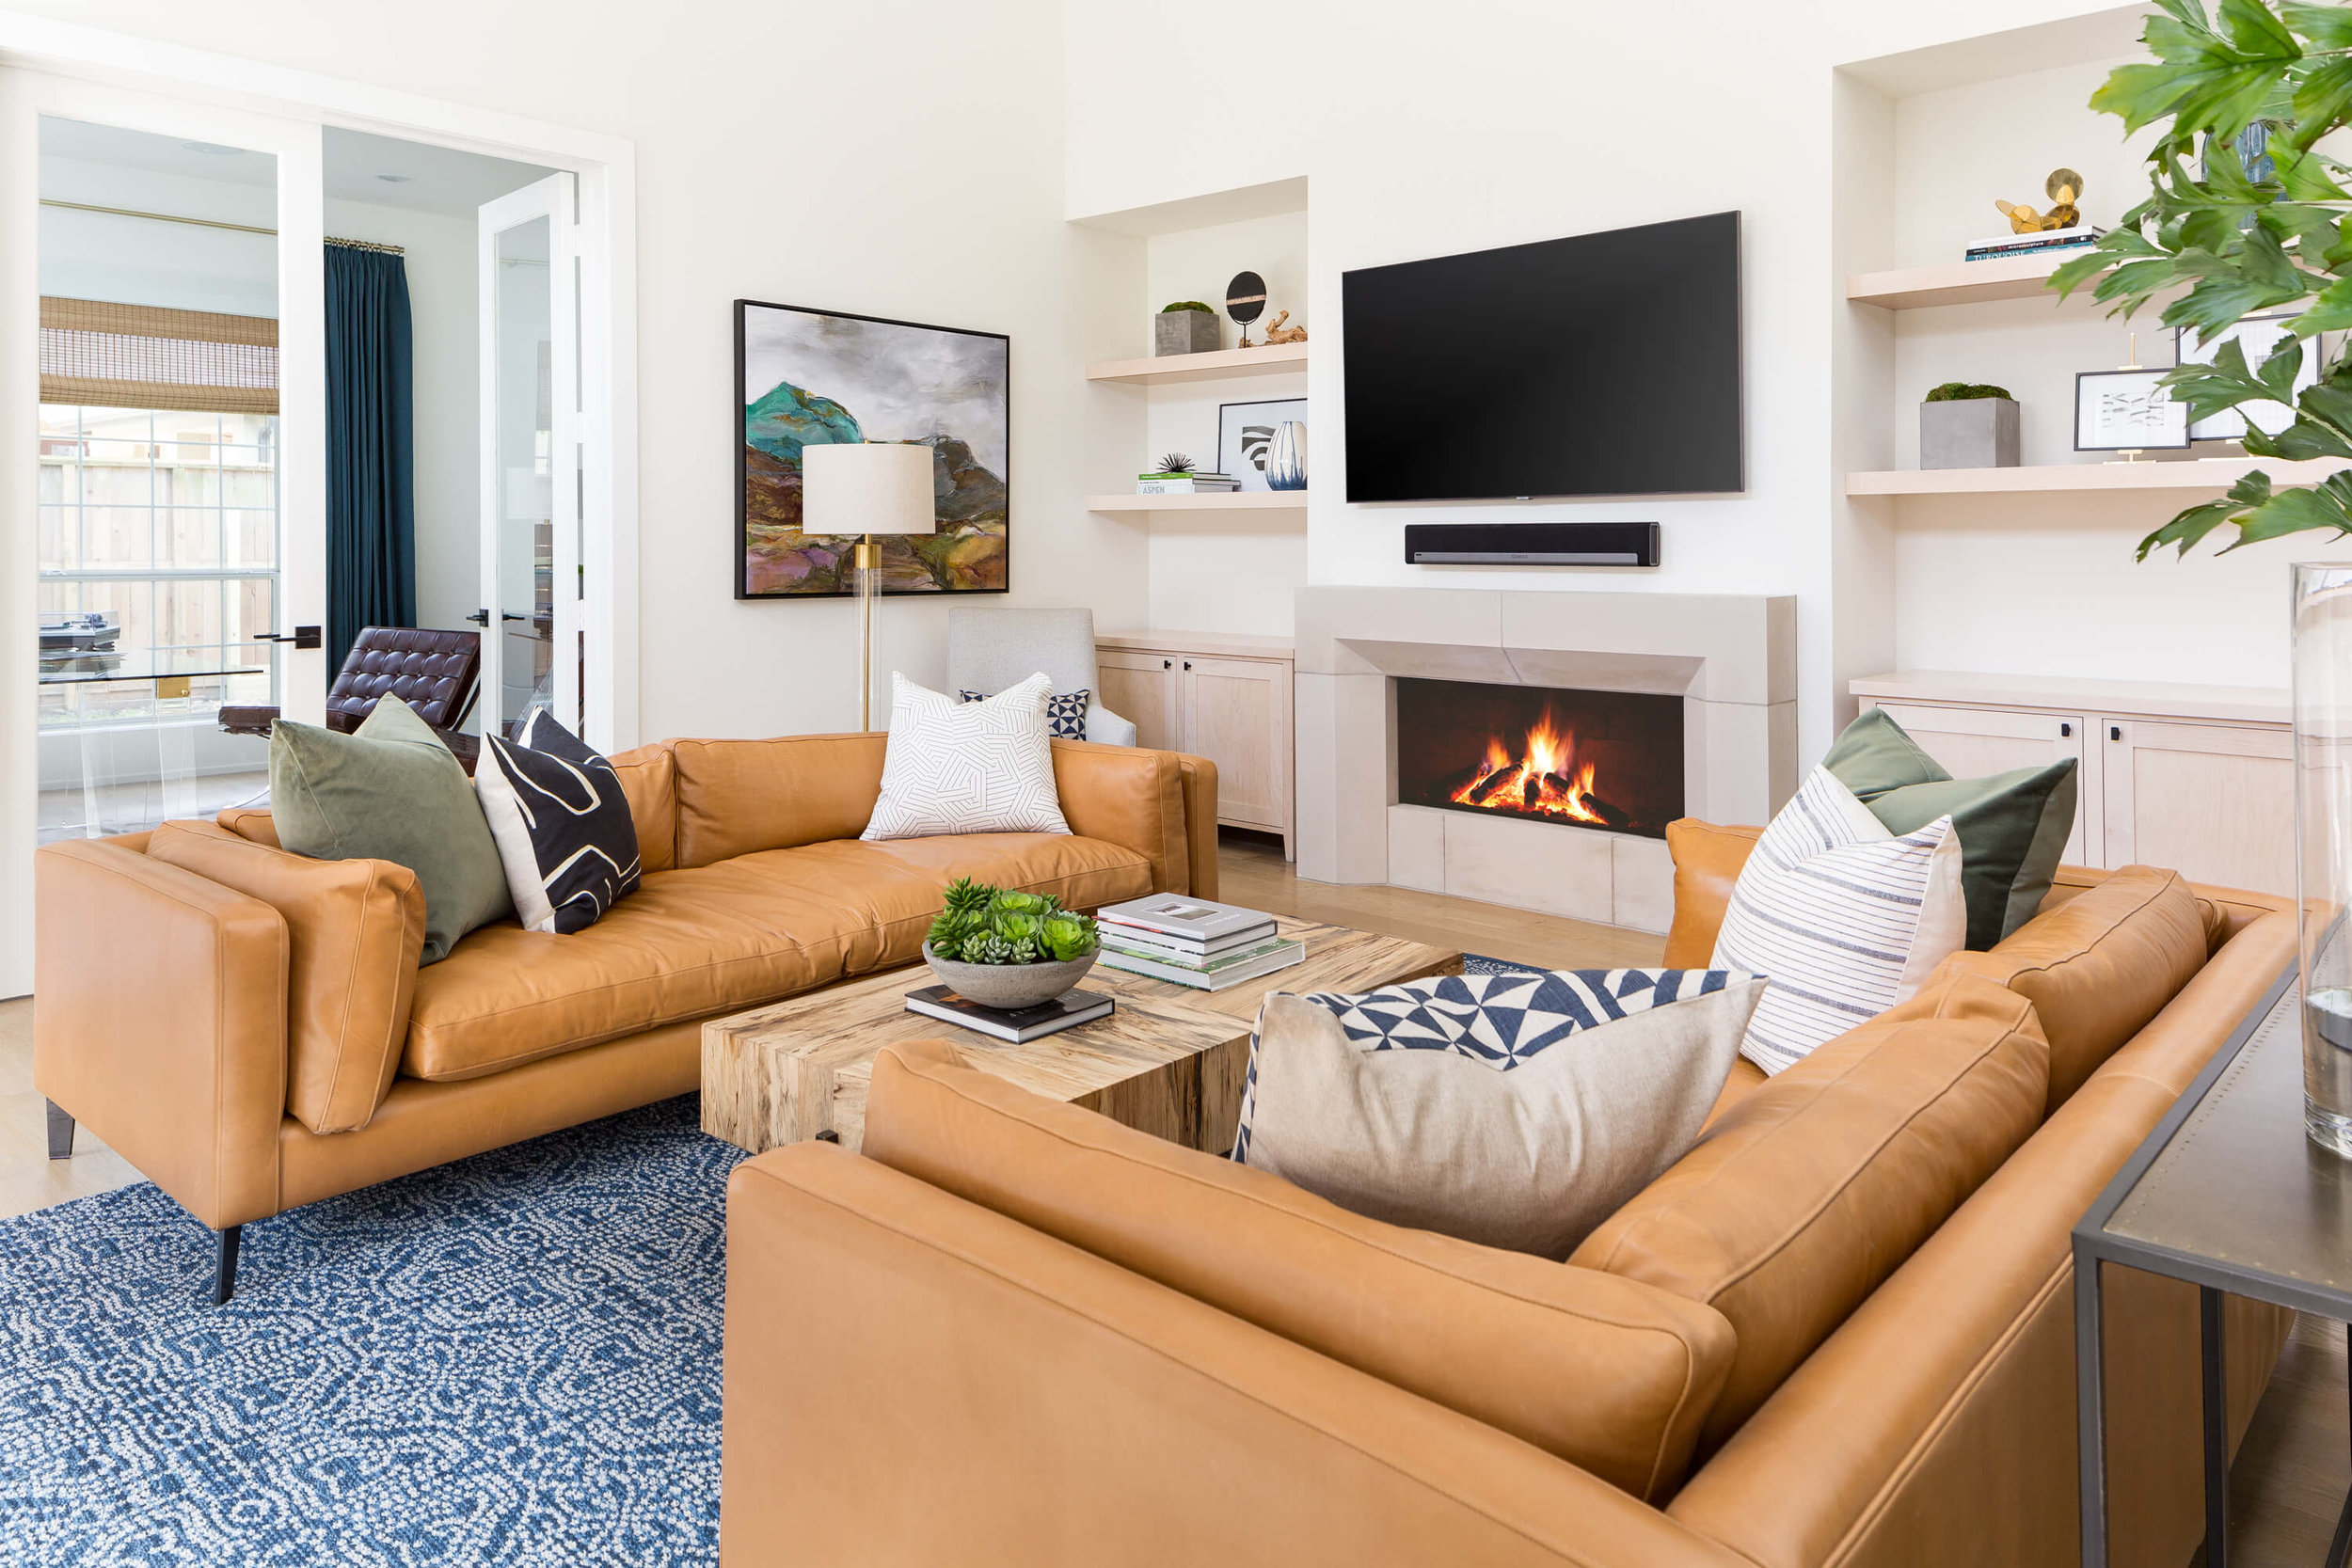 BEHIND THE SCENES: BELLAIRE EASYGOING ELEGANCE